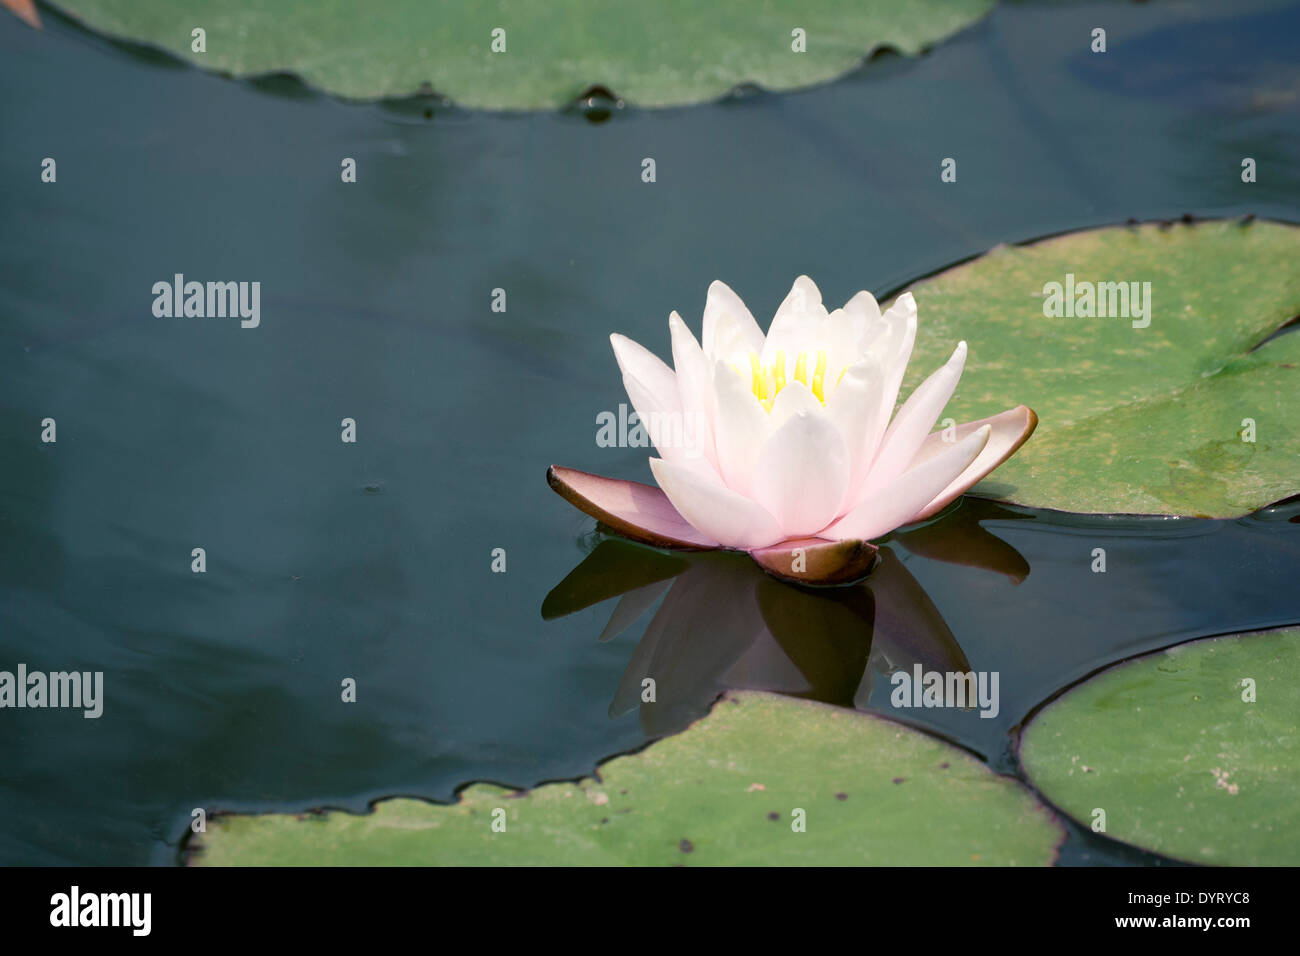 Beautiful White Lotus In Japanese Pond With Focus On Flower Stock